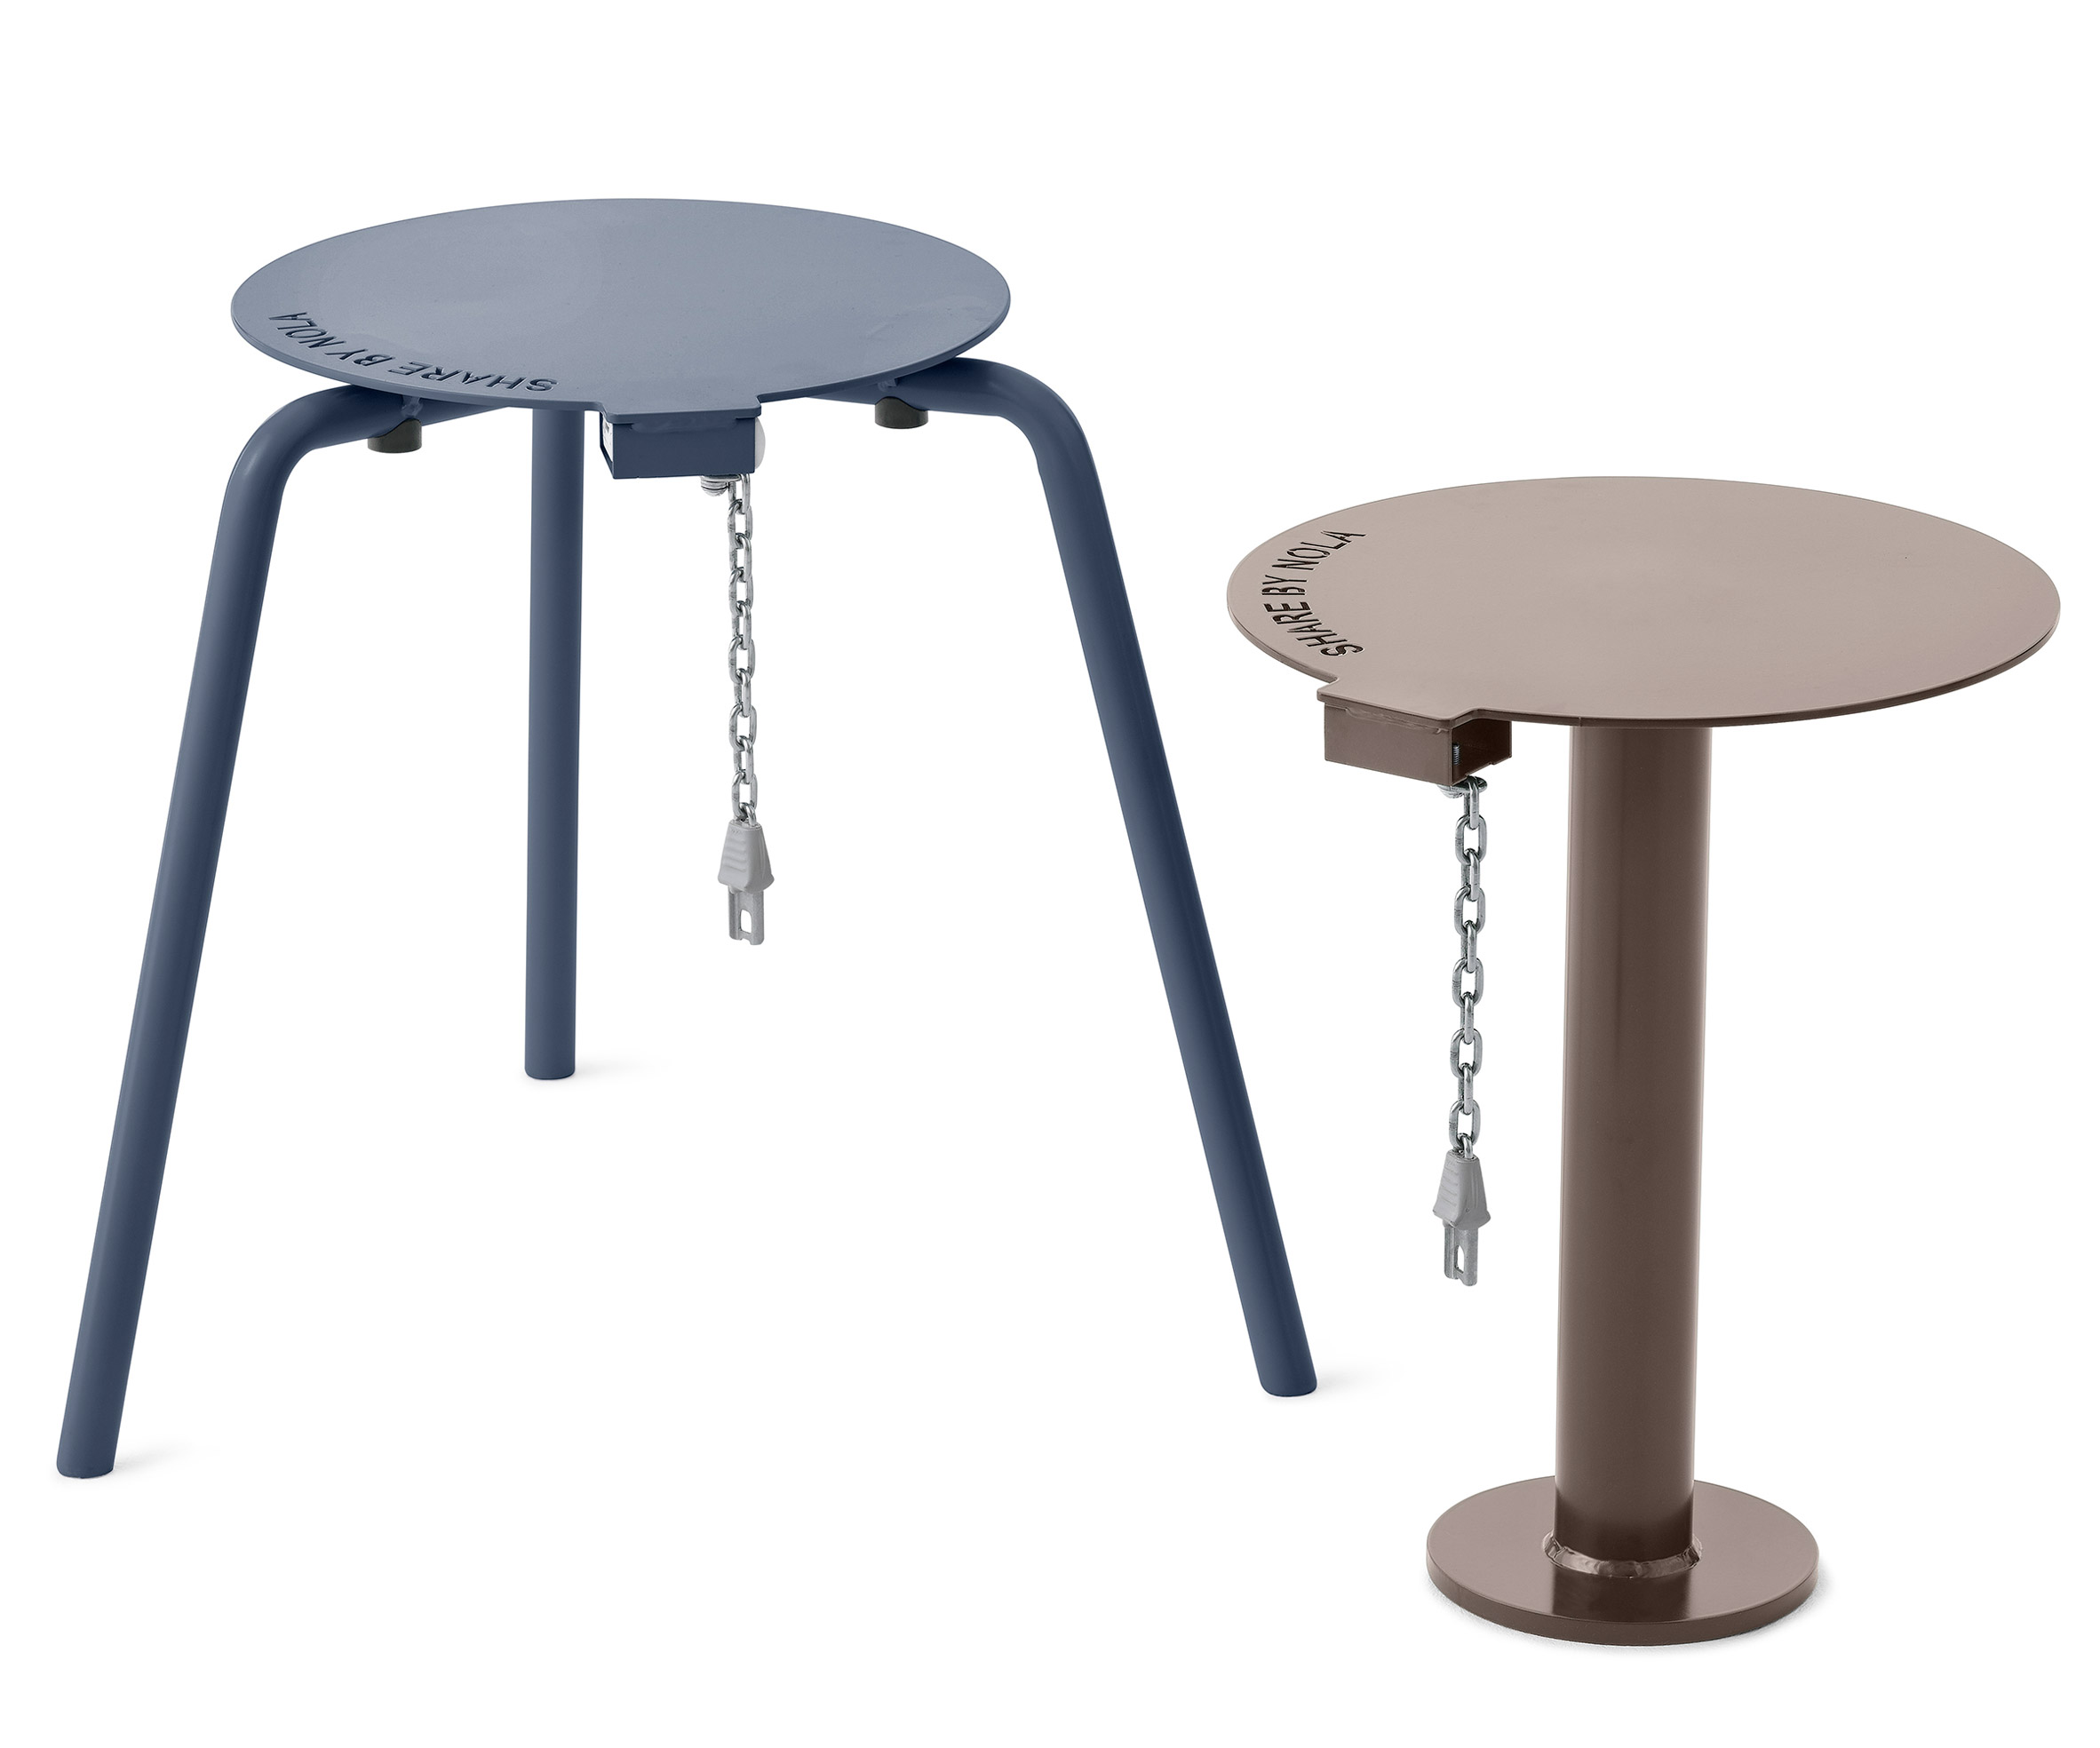 Thomas Bernstrand's coin-operated Share Stool is an alternative to fixed street furniture